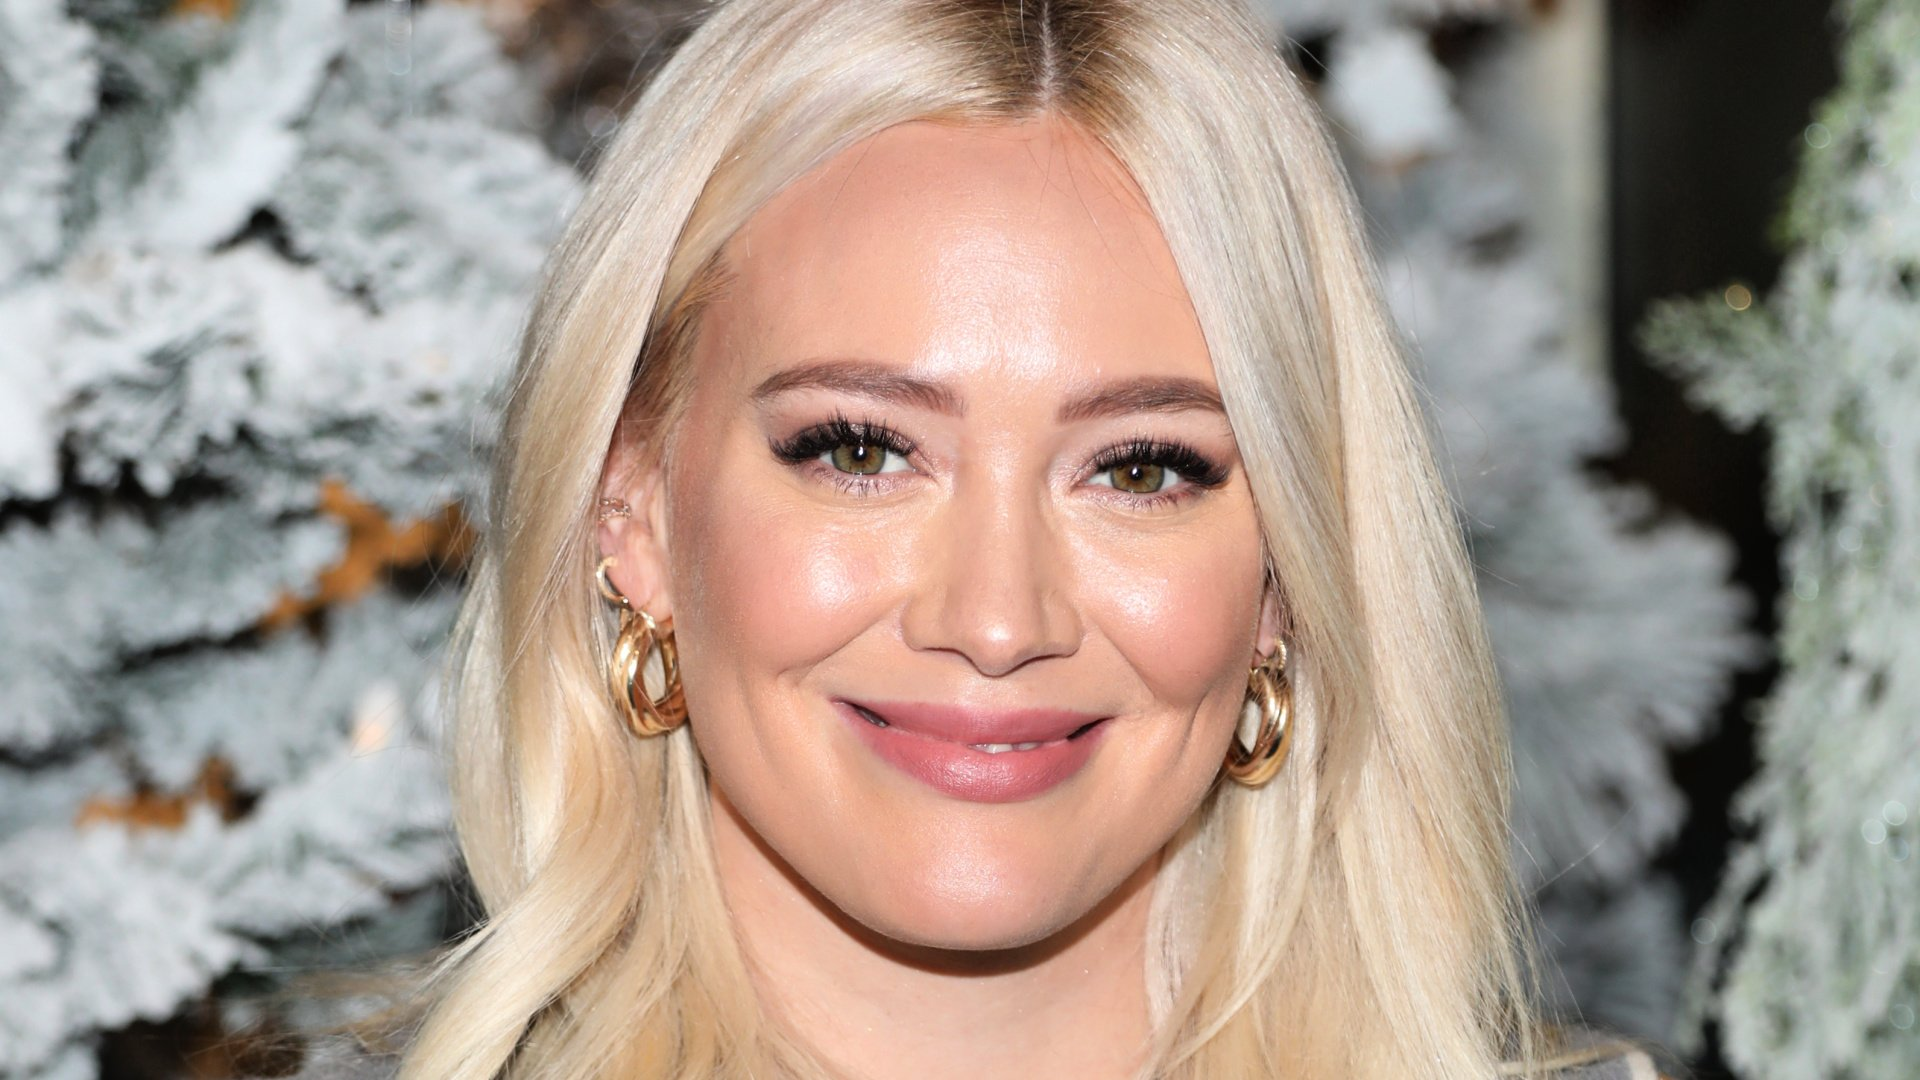 Hilary Duff is Being Criticized for This Breastfeeding Photo